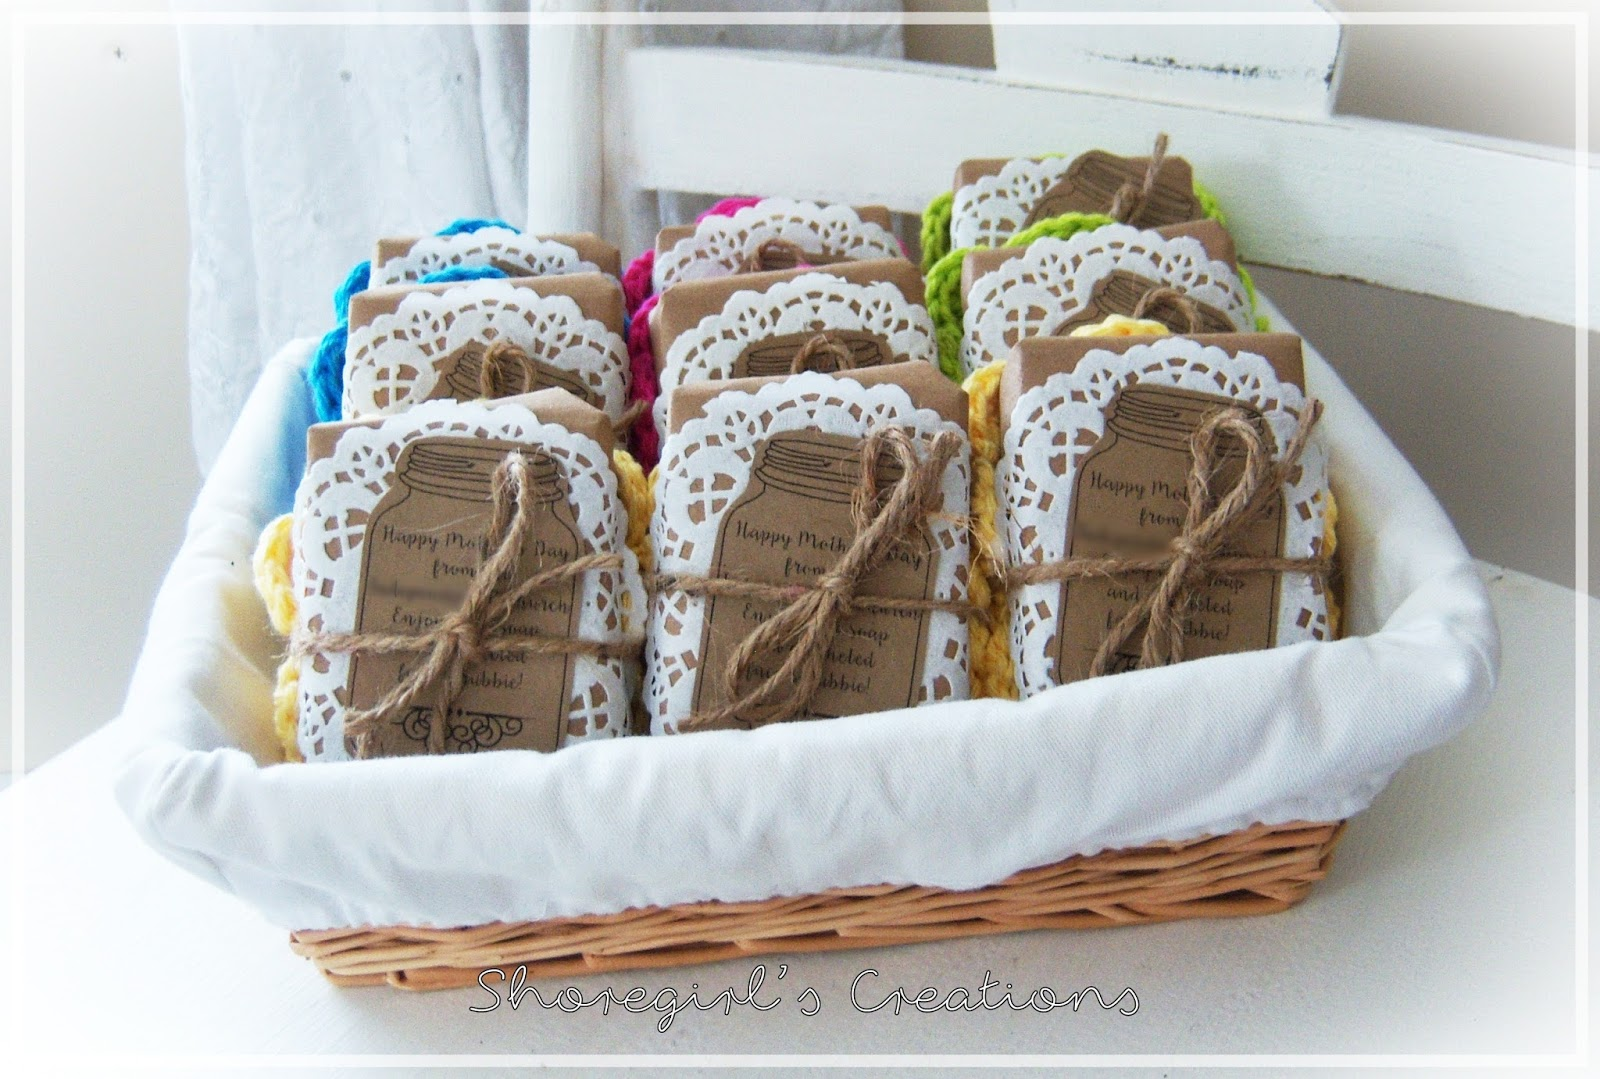 shoregirl's creations: mother's day gifts